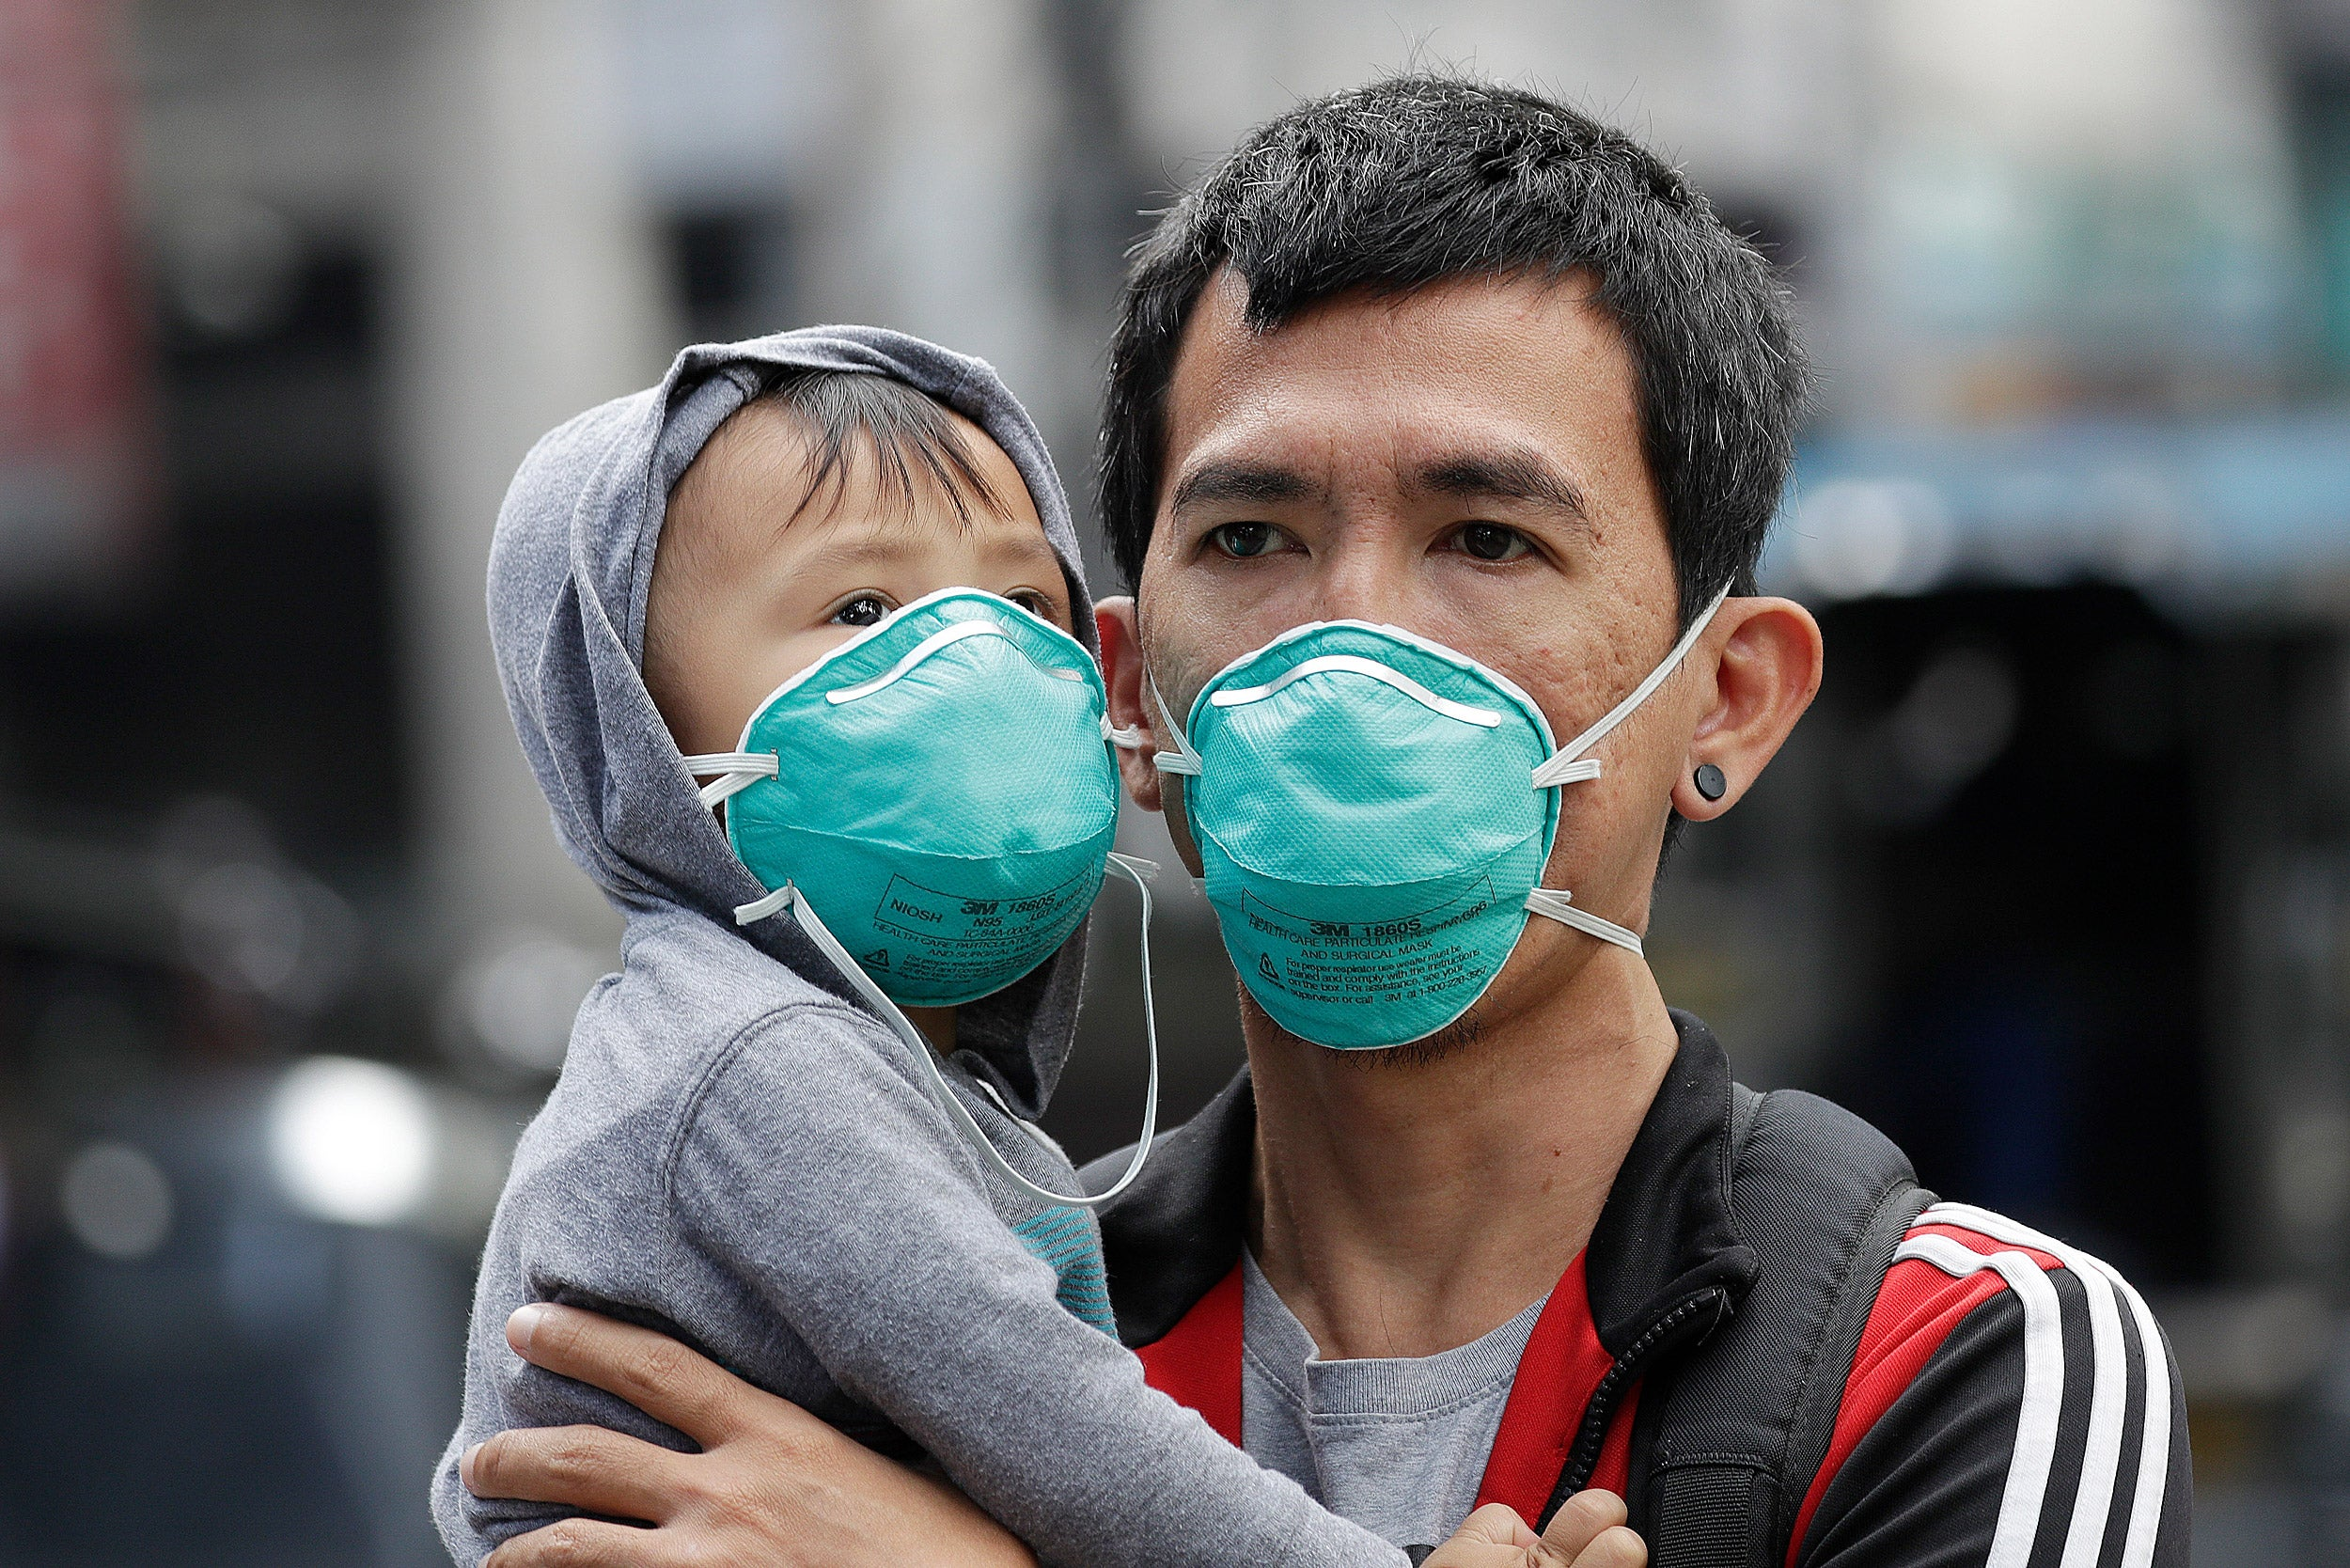 Adult and child wearing flu masks.